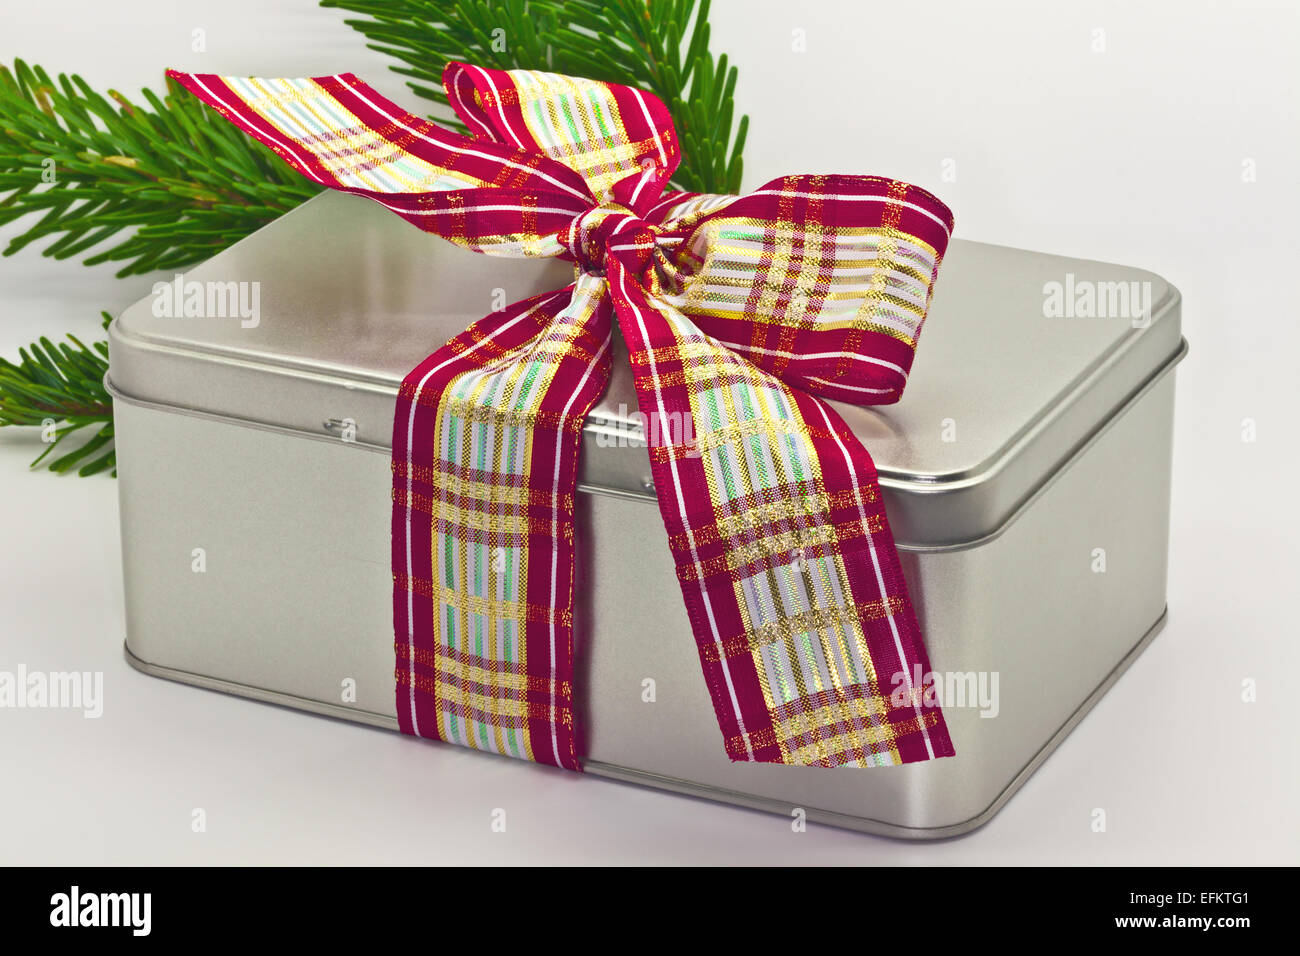 Festive tin gift box with wide ribbon bow. - Stock Image